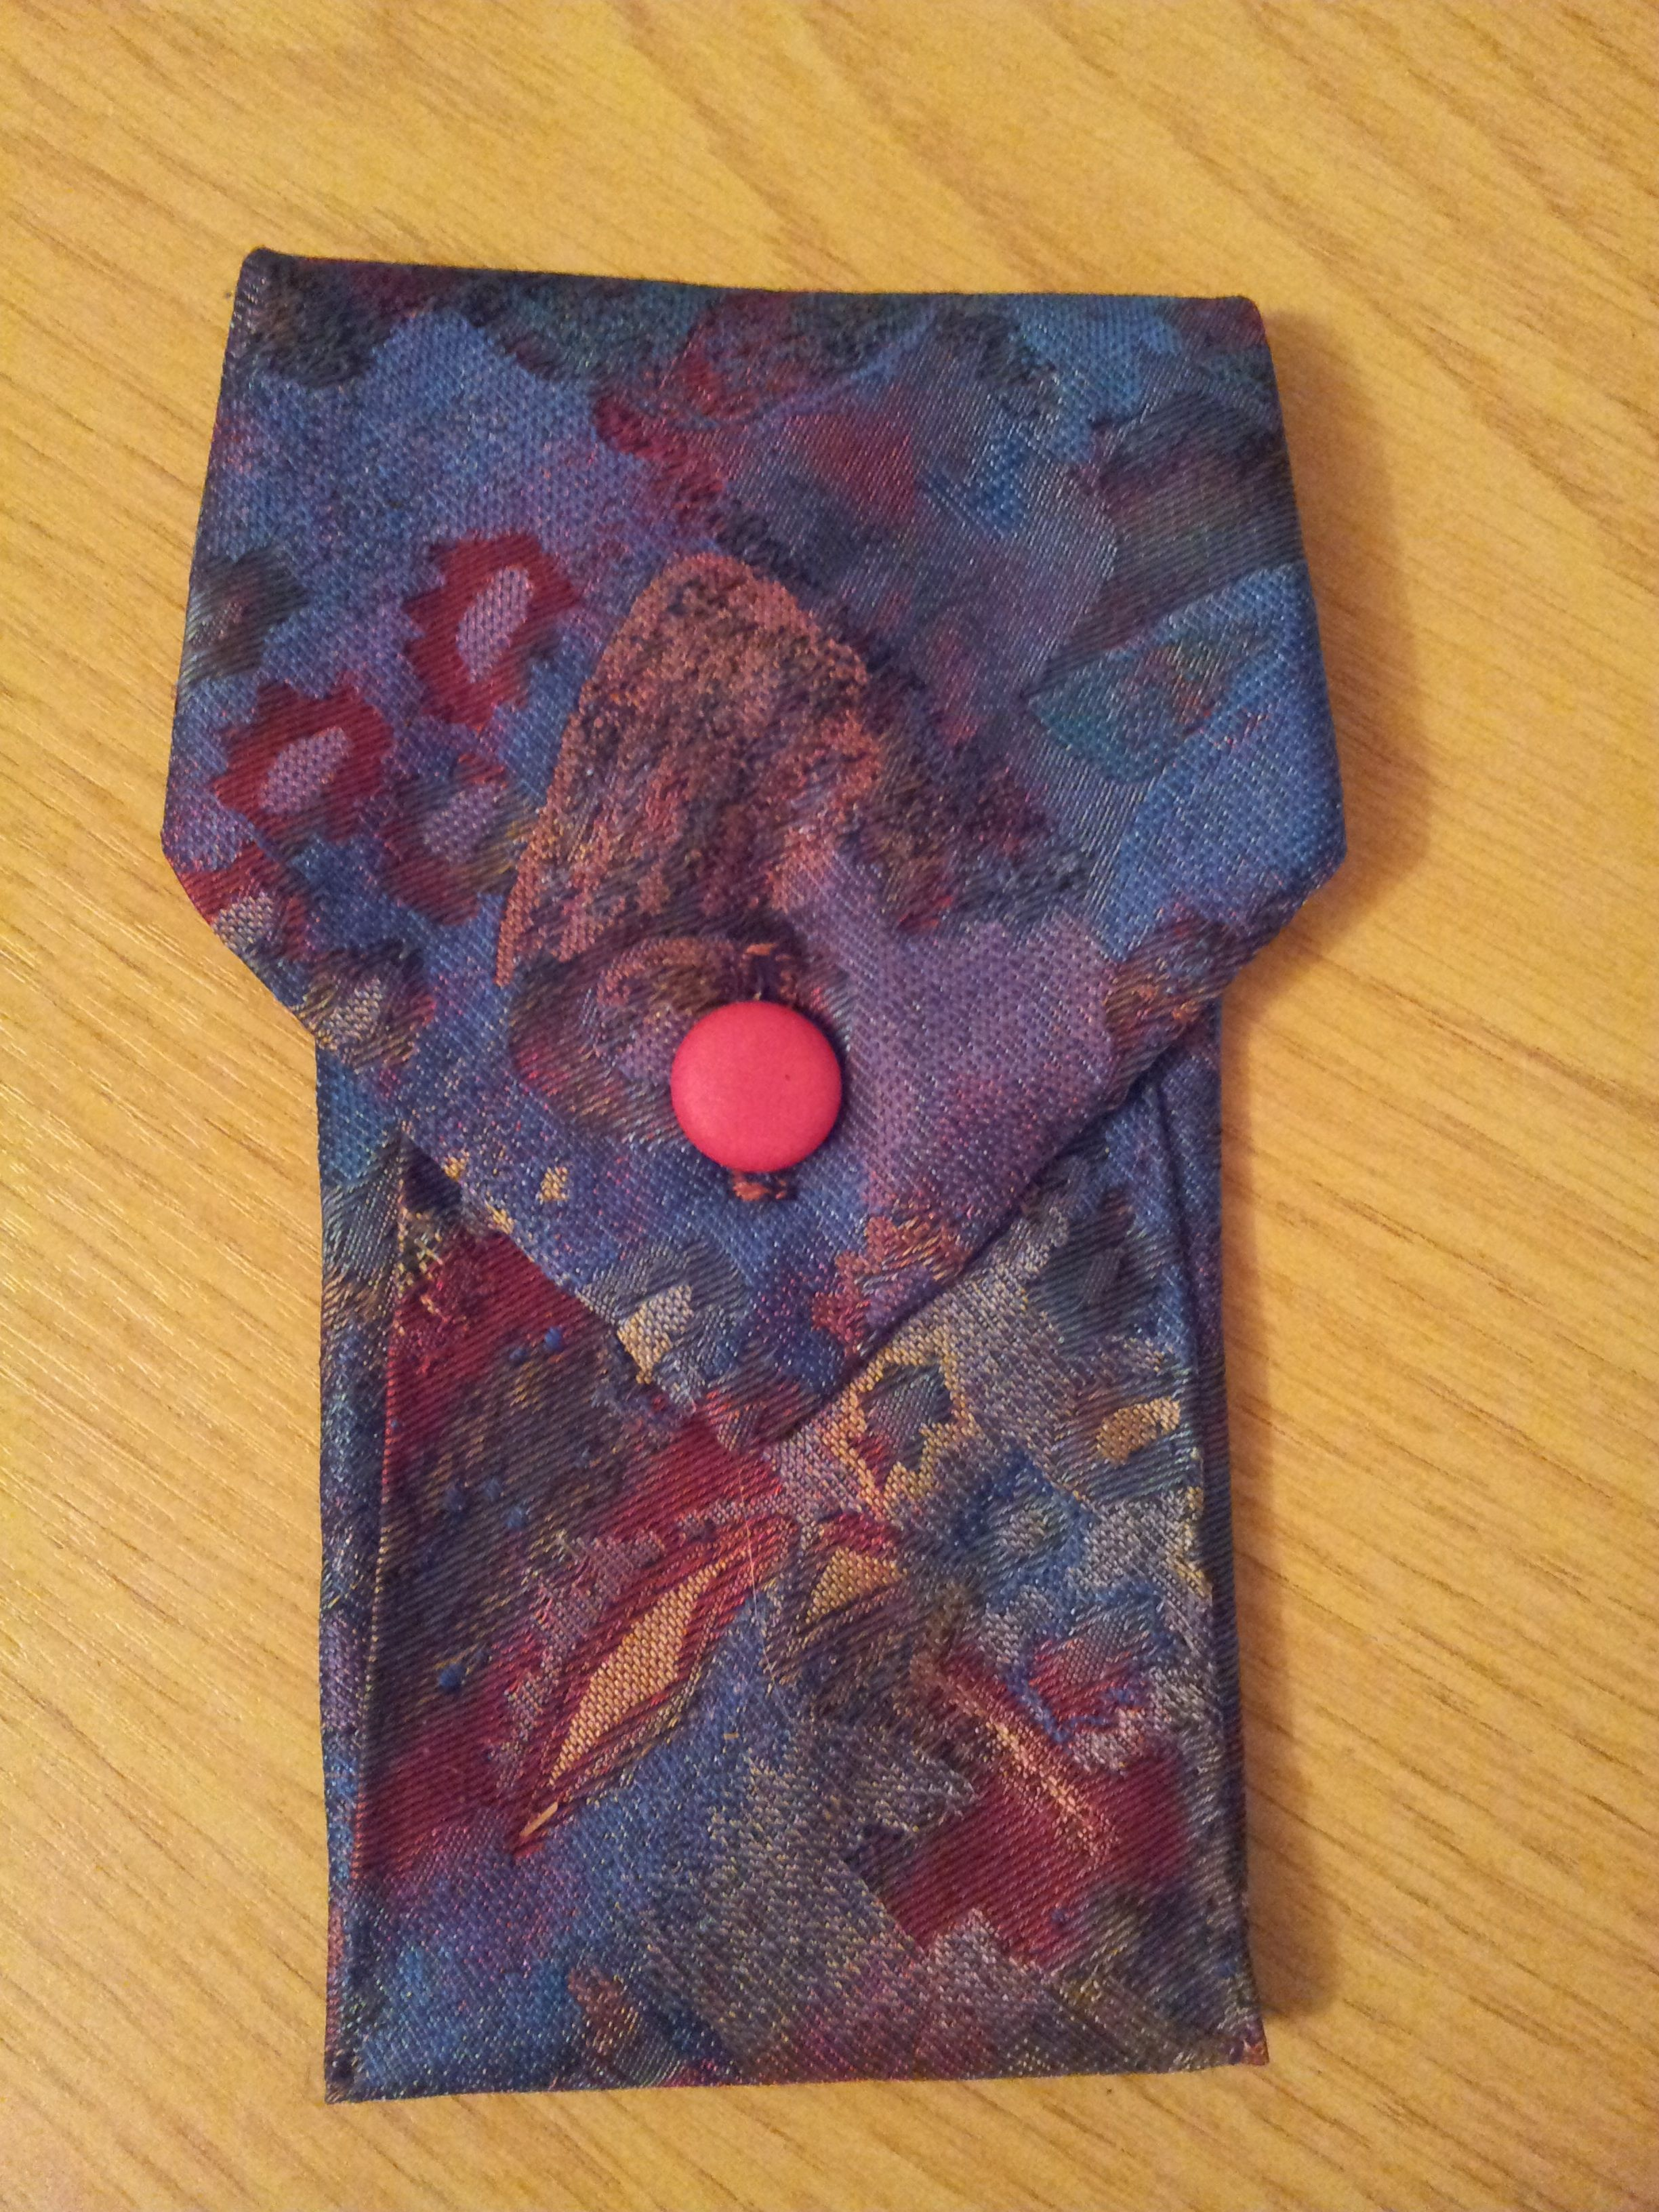 Mobile phone pouch made from a tie. www.junksmith.co.uk